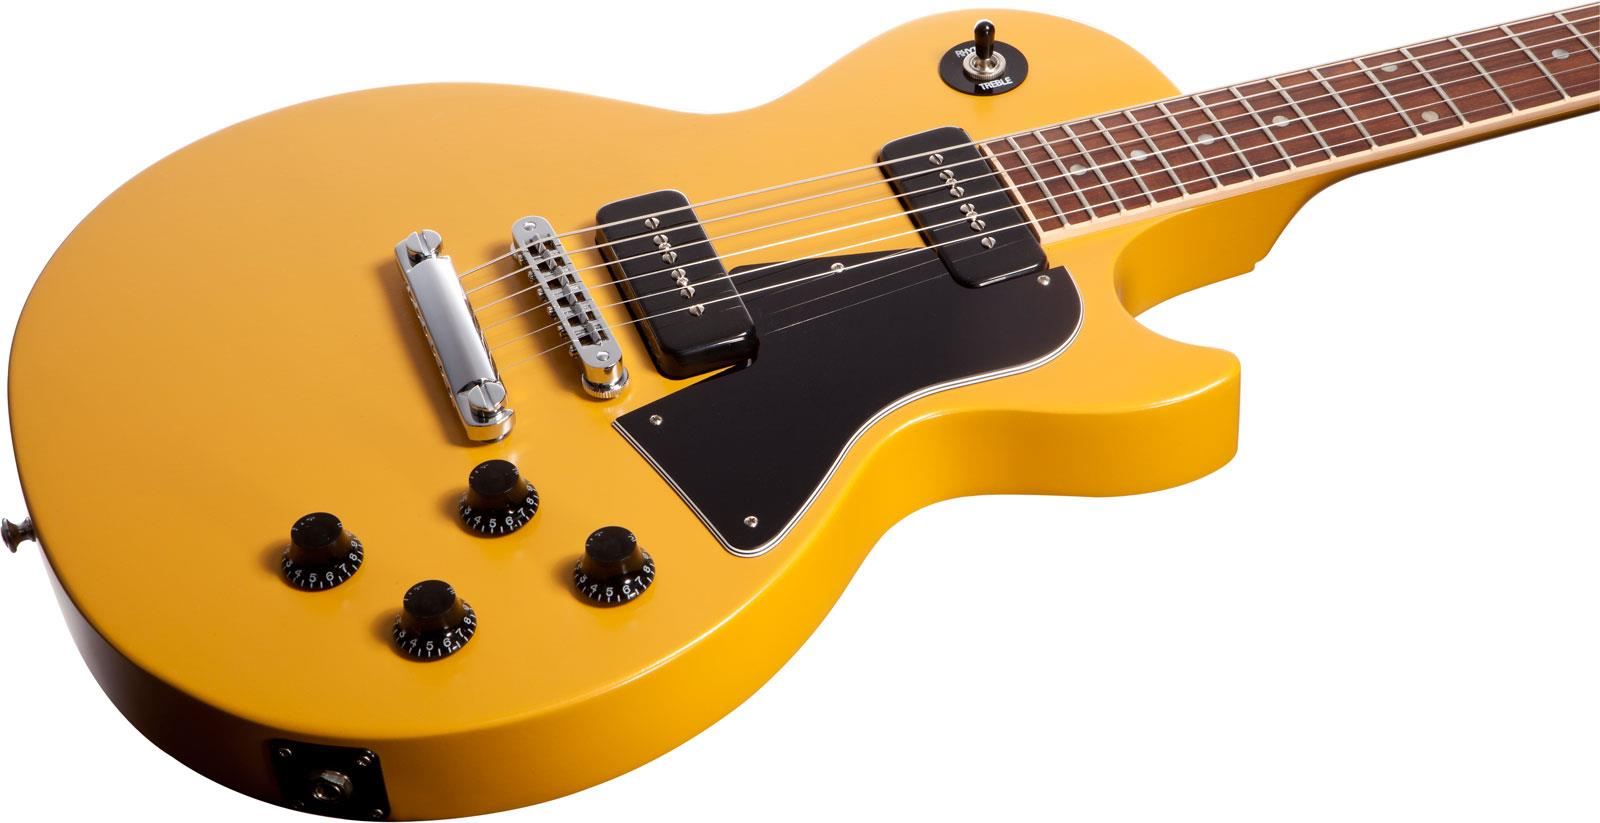 gibson les paul junior special p90 satin yellow keymusic. Black Bedroom Furniture Sets. Home Design Ideas